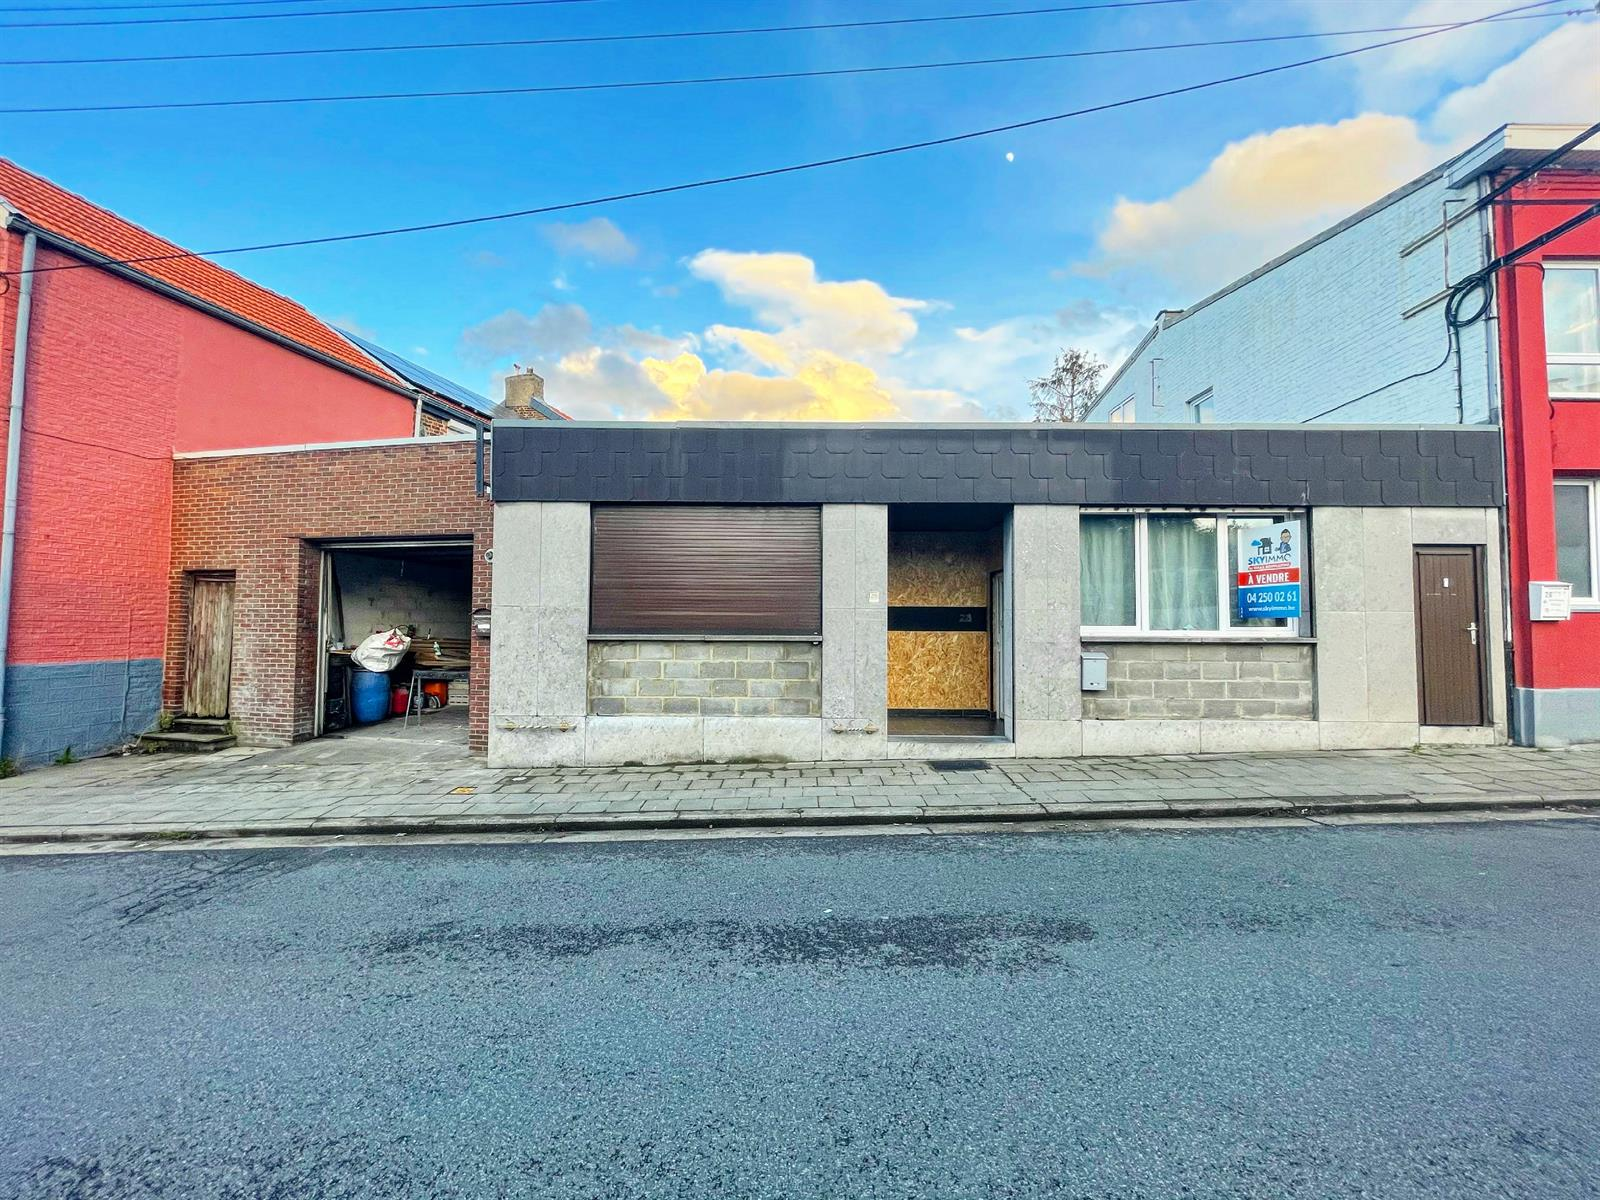 Huis - Flemalle - #4401918-0